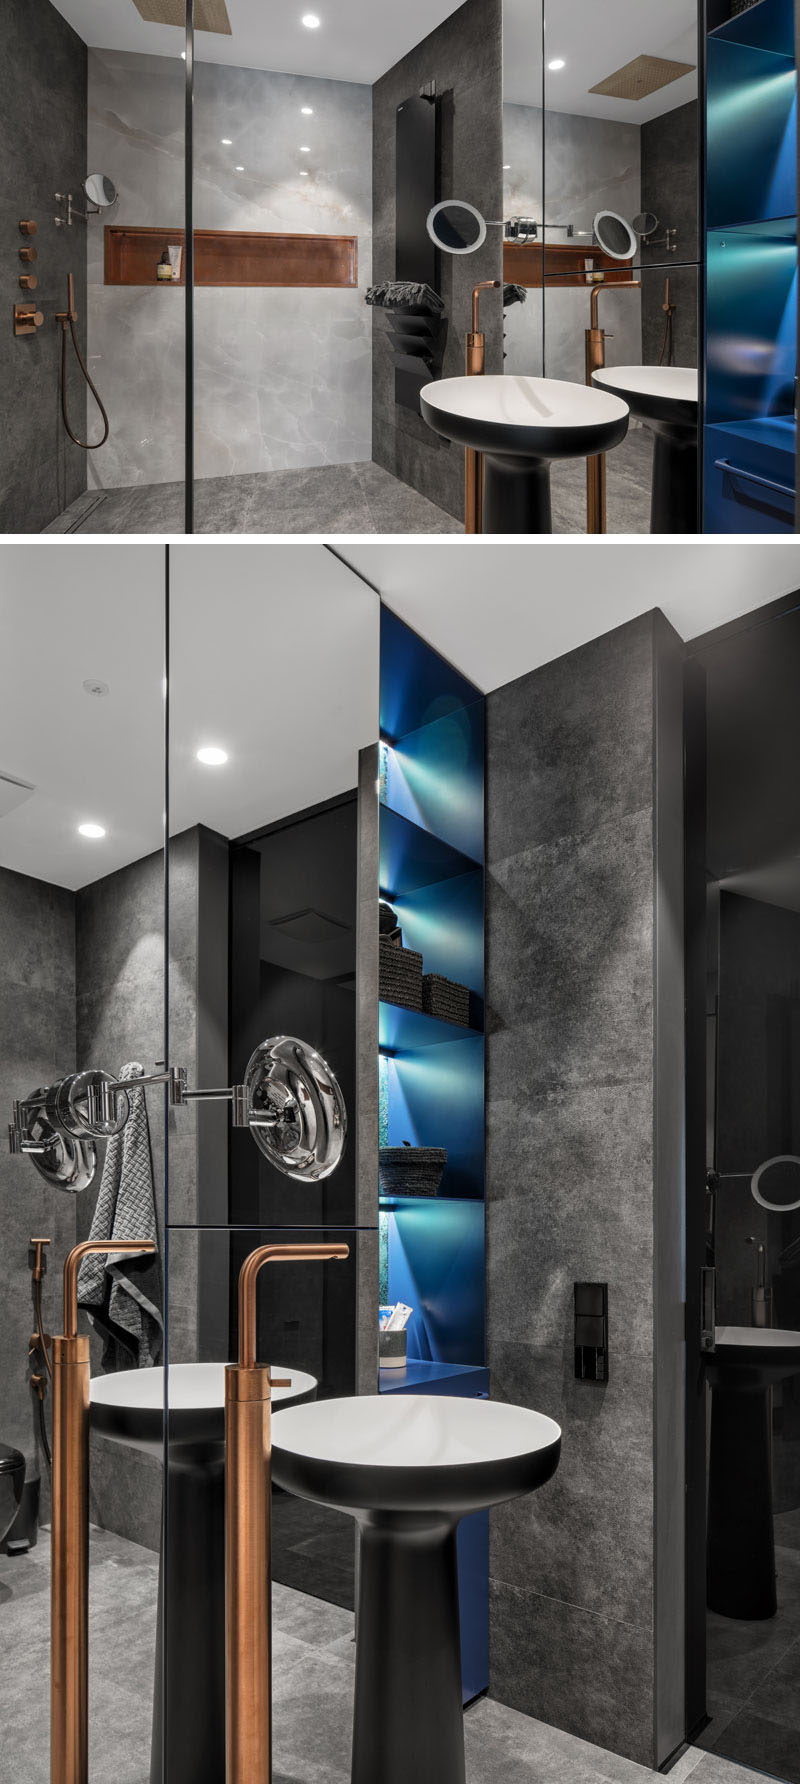 In this modern bathroom, dark design elements have been combined with lighter walls and copper details. A pop of color has been added in the form of a blue shelving unit with built-in led lights.